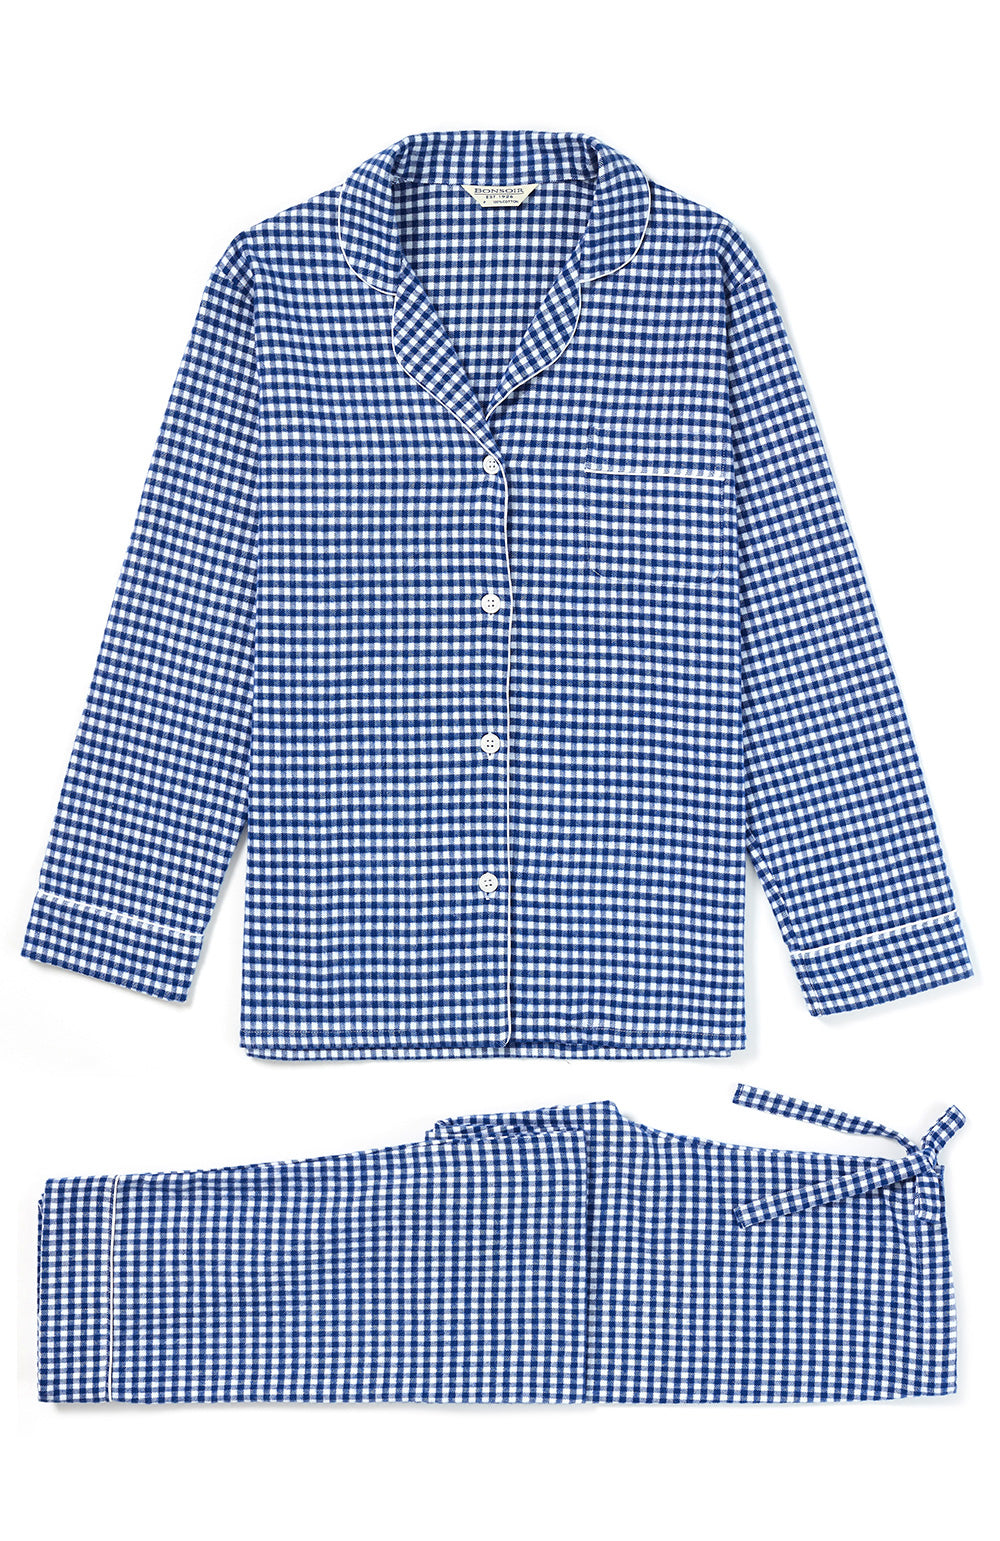 Brushed Cotton Navy Gingham Pyjamas | Bonsoir of London